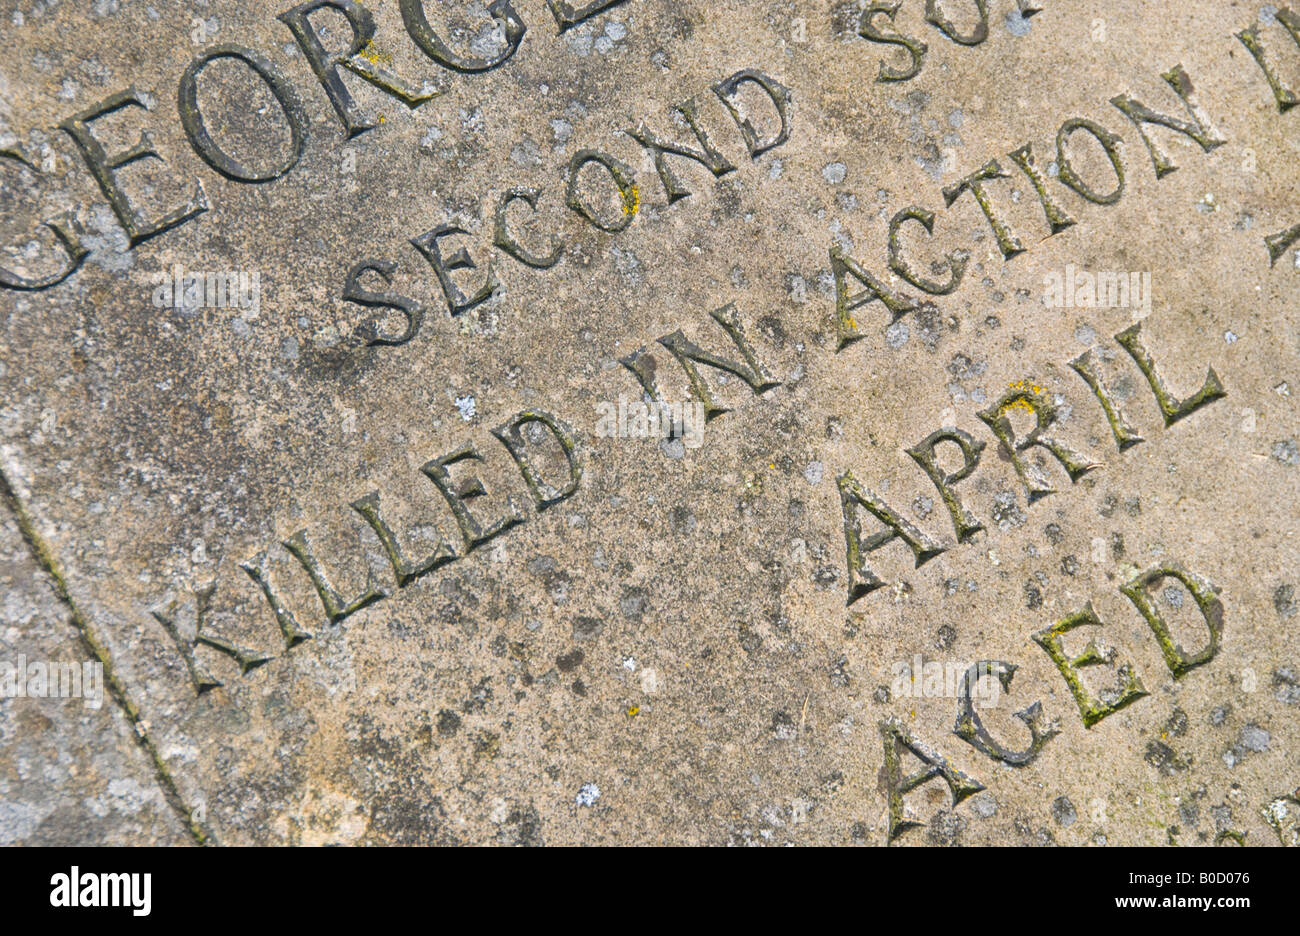 Gravestone of soldier KILLED IN ACTION England UK EU - Stock Image